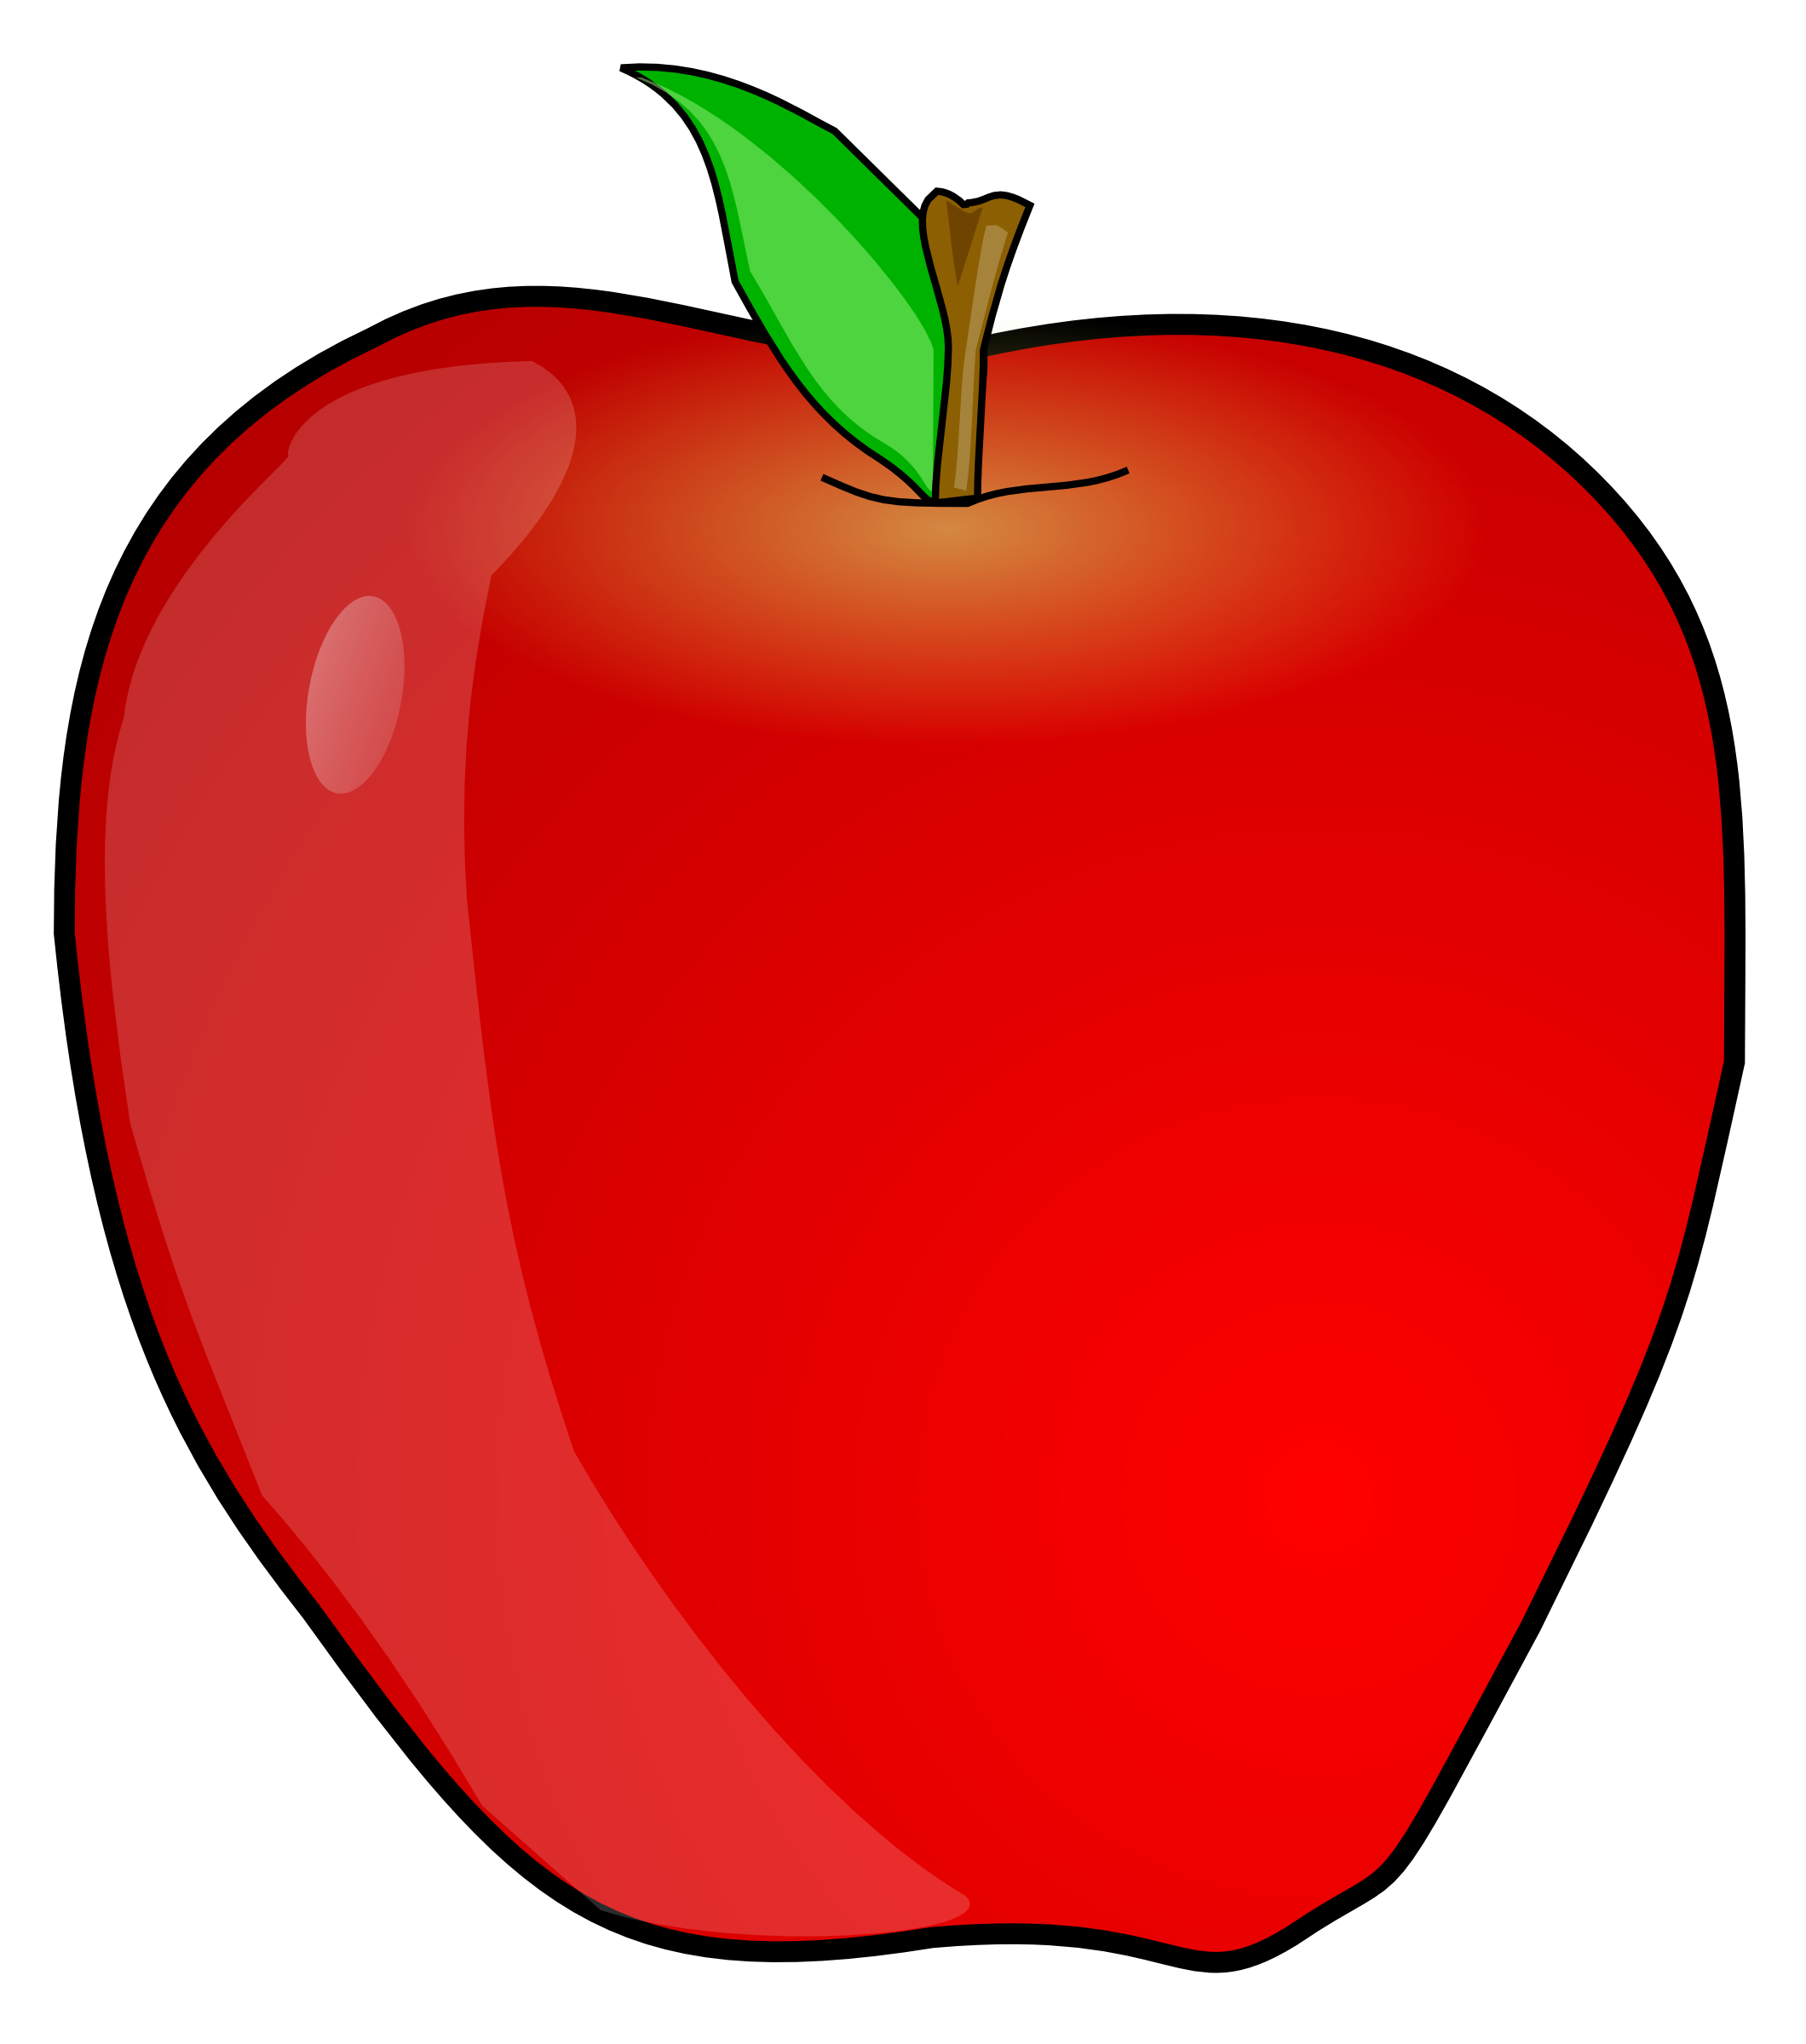 Apple Clipart | Clipart Panda - Free Clipart Images